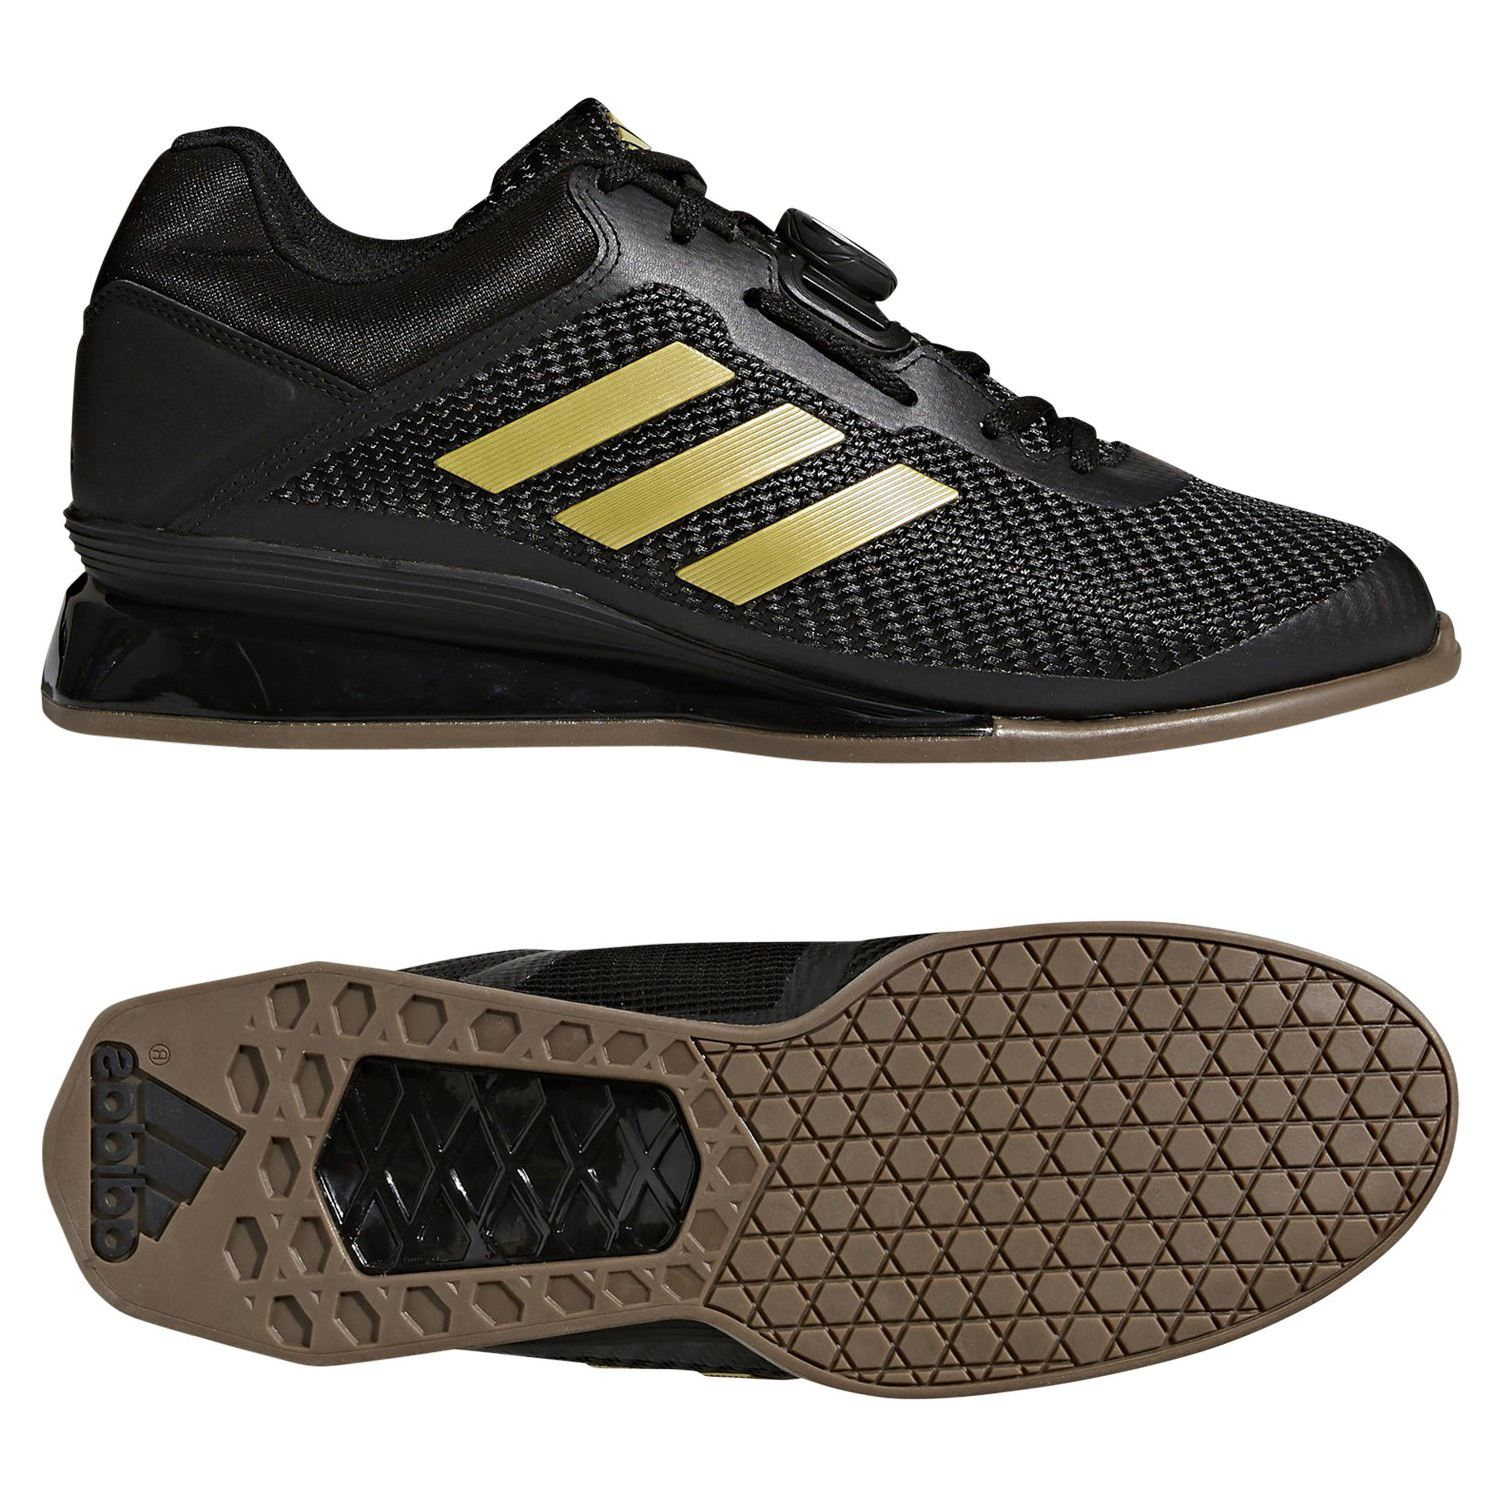 Adidas Powerlifting 2.0 Weightlifting Shoes